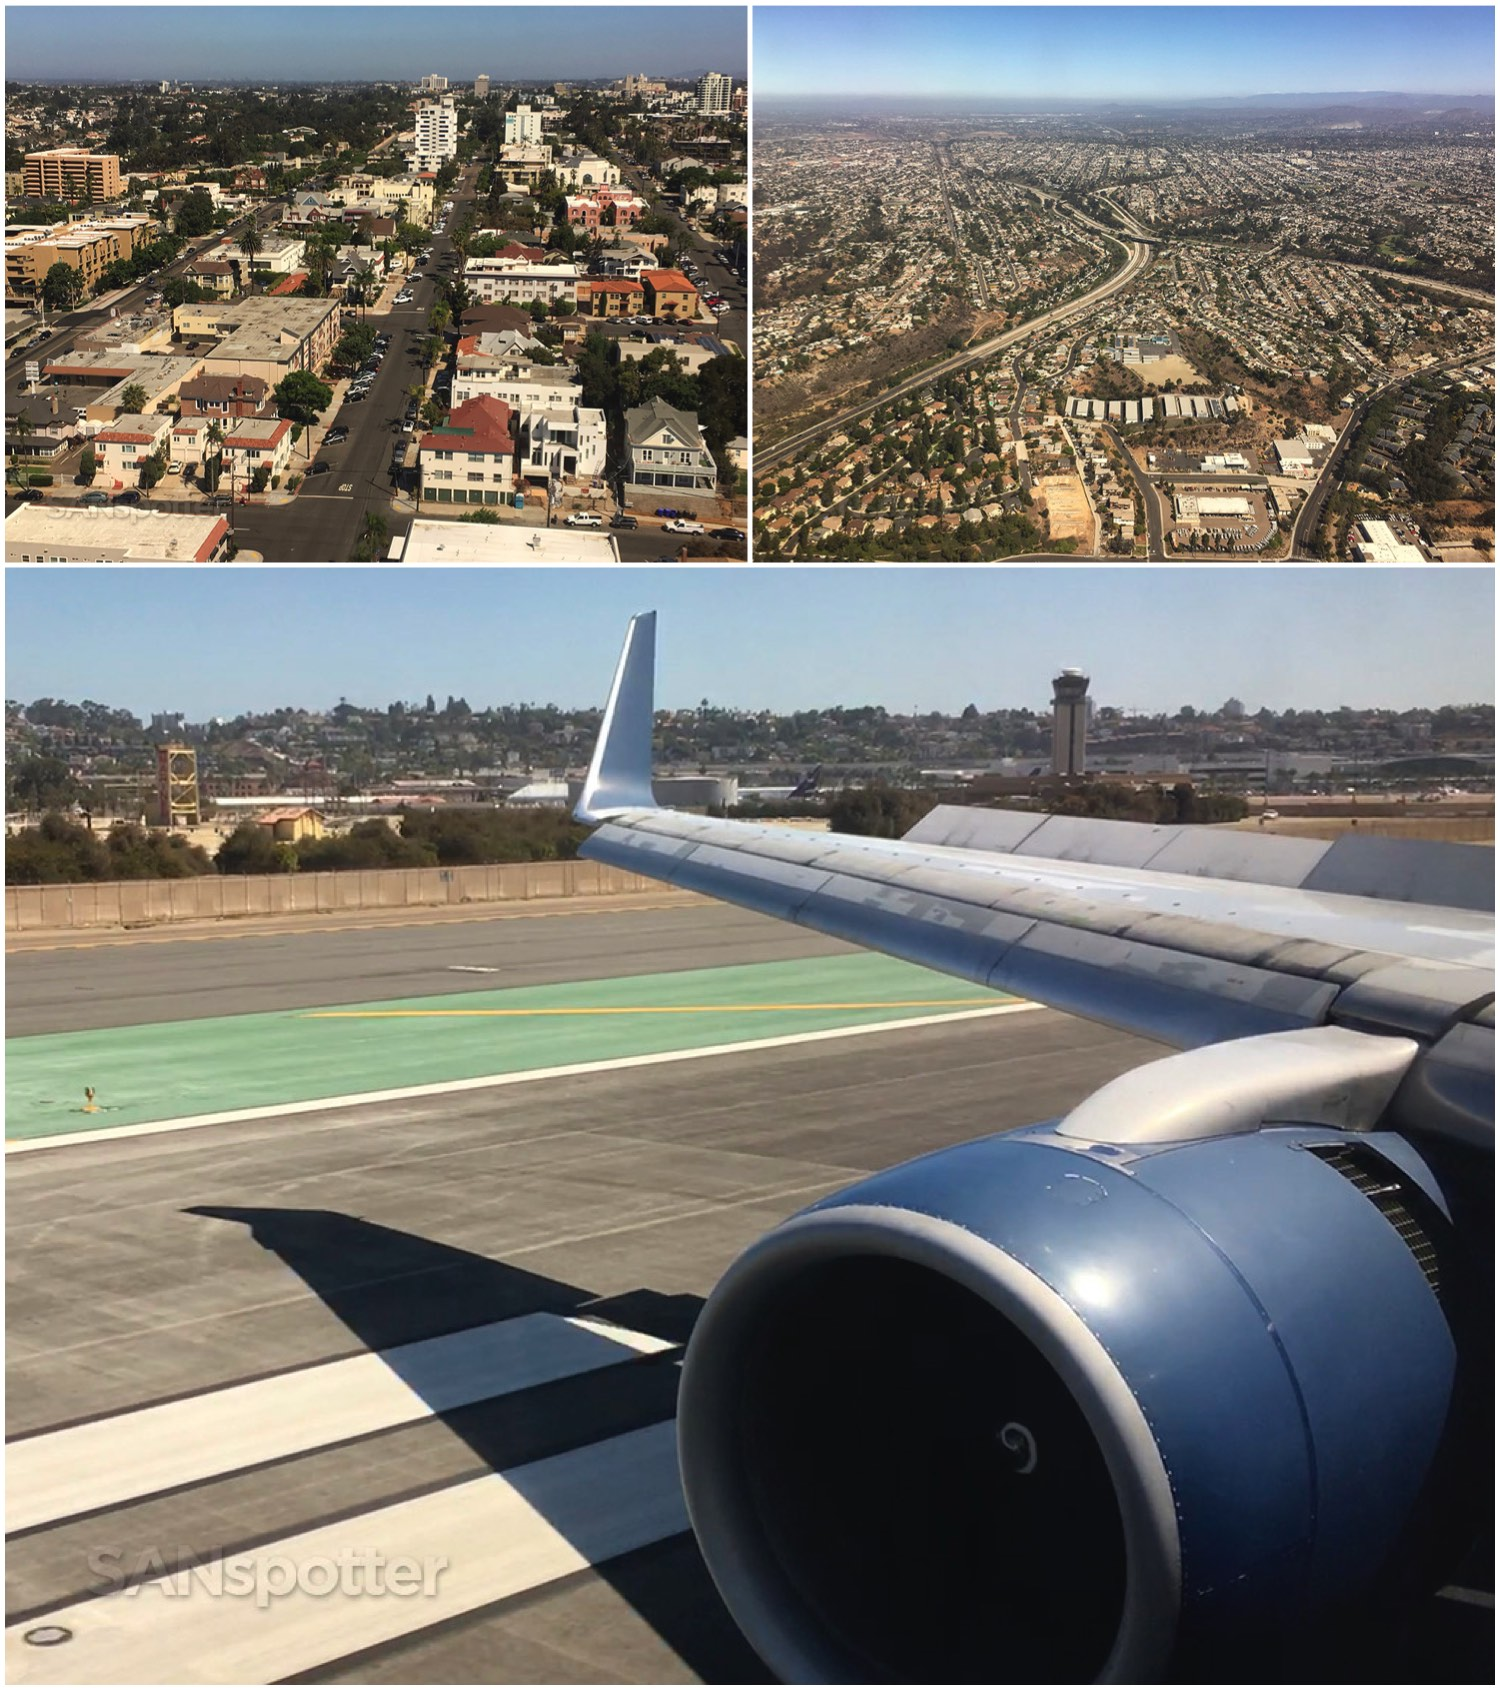 Returning home to San Diego airport